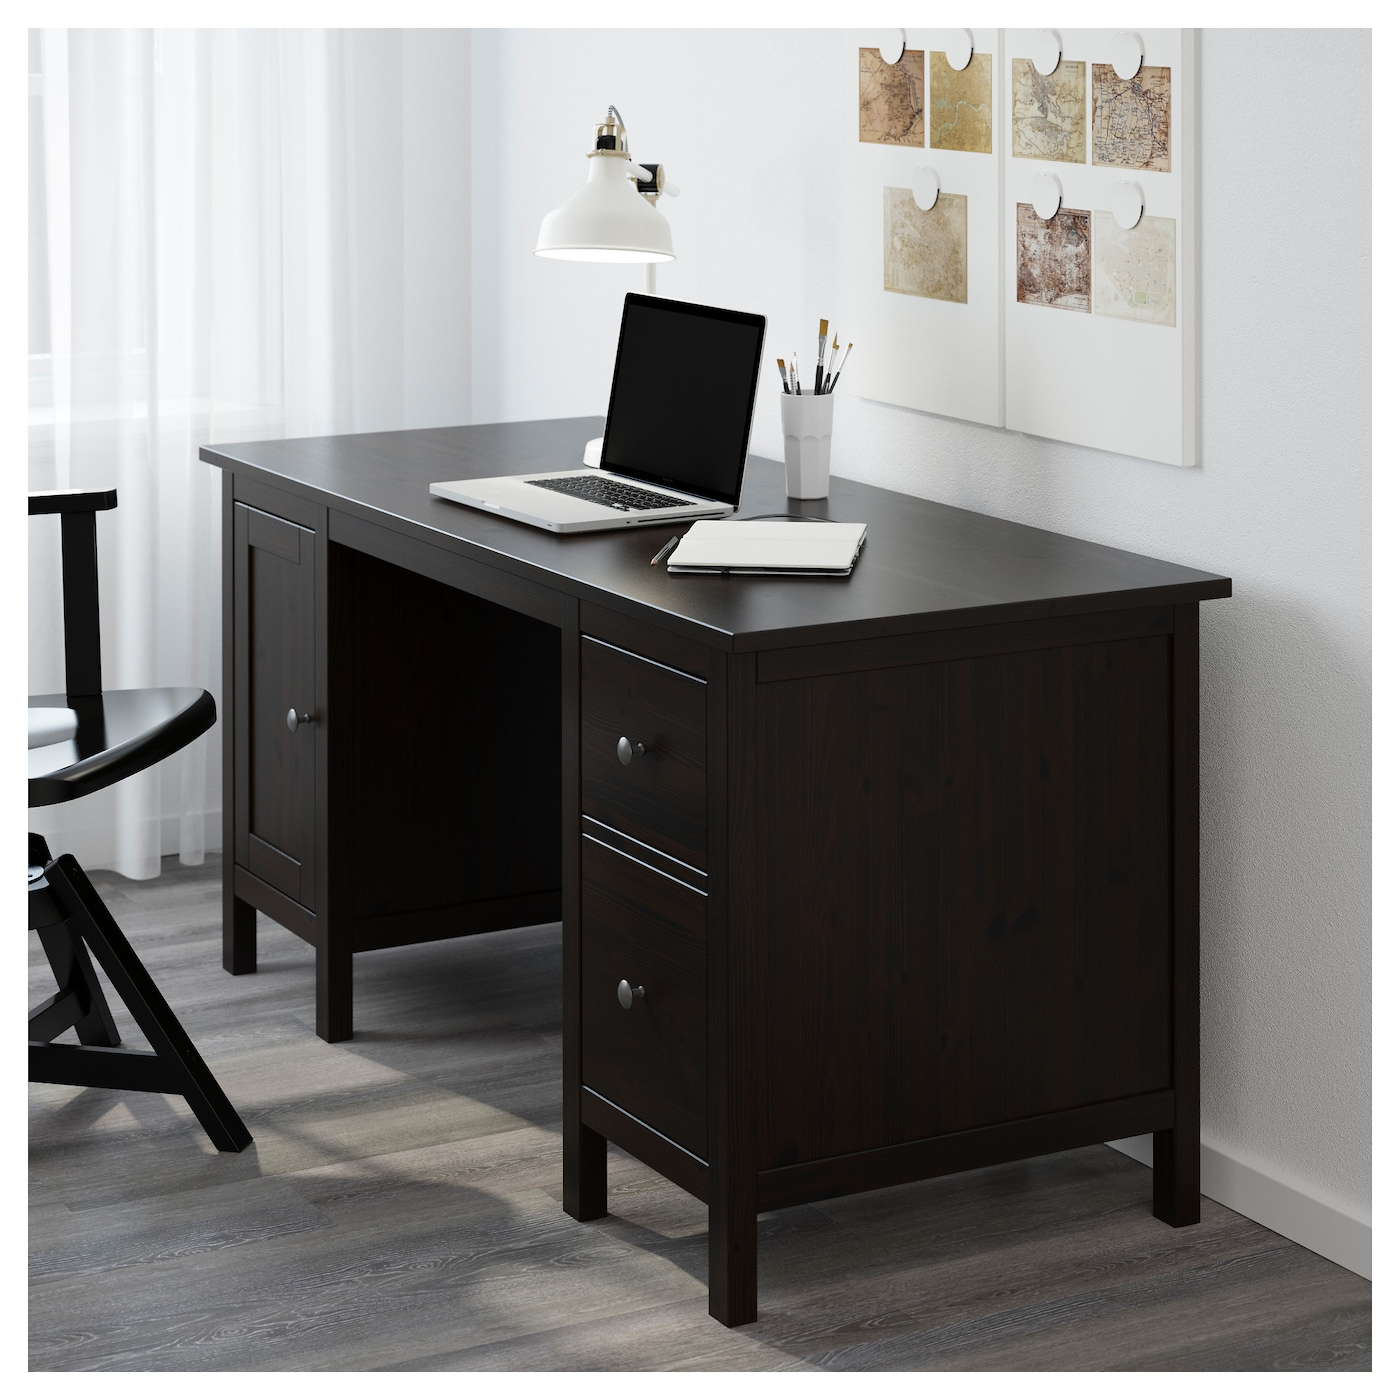 Hemnes desk black brown 155 x 65 cm ikea for Ikea comodino hemnes